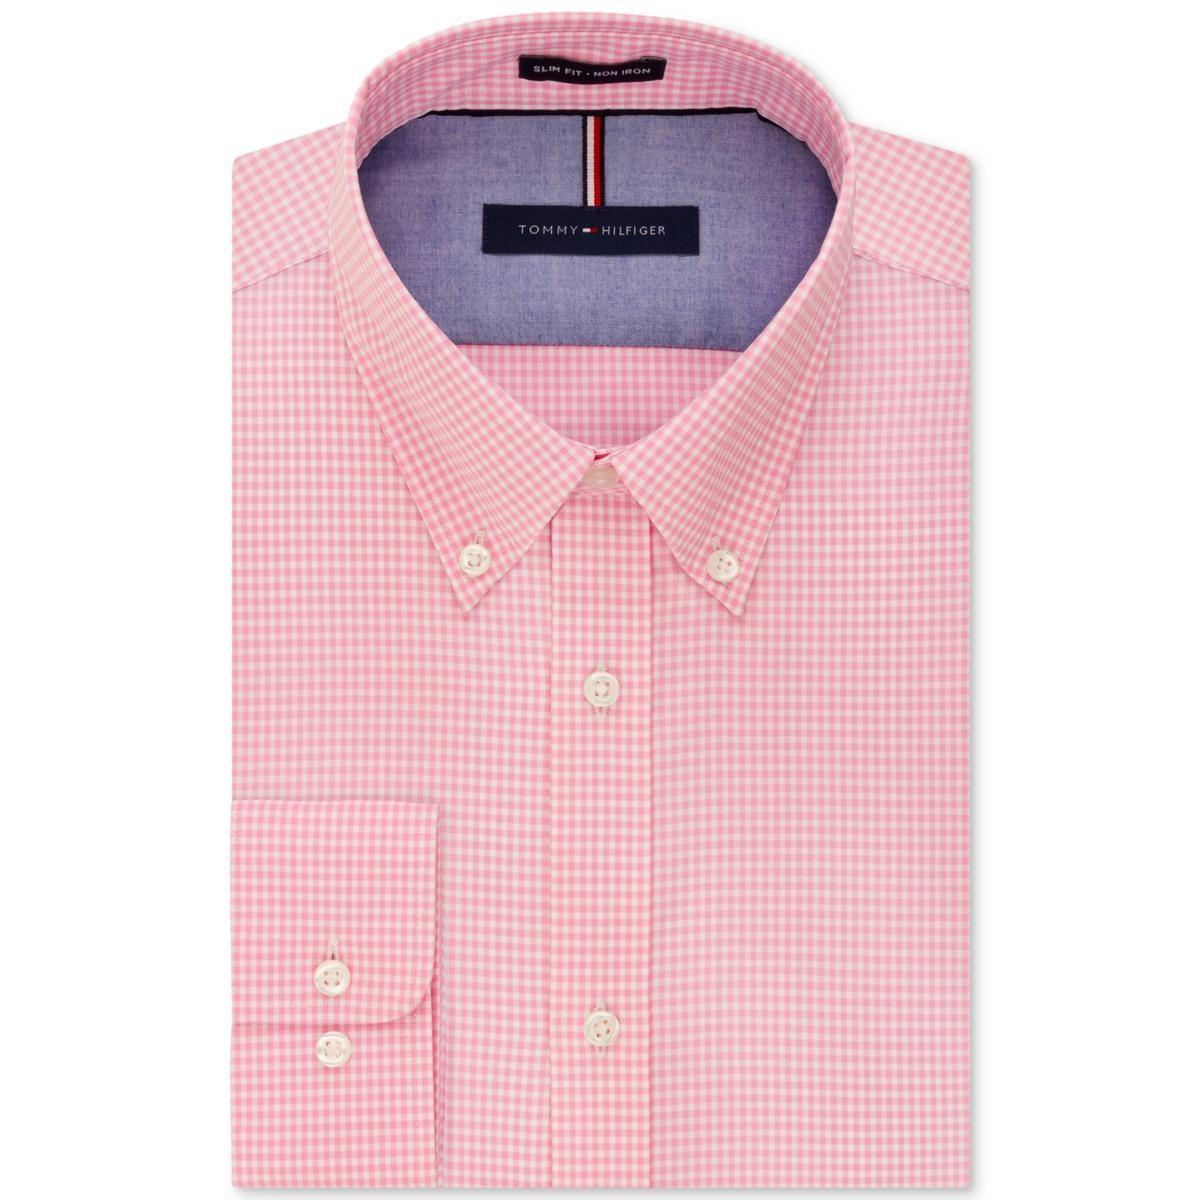 79e89b91 Lyst - Tommy Hilfiger Slim Fit Checkered Button-down Shirt in Pink ...